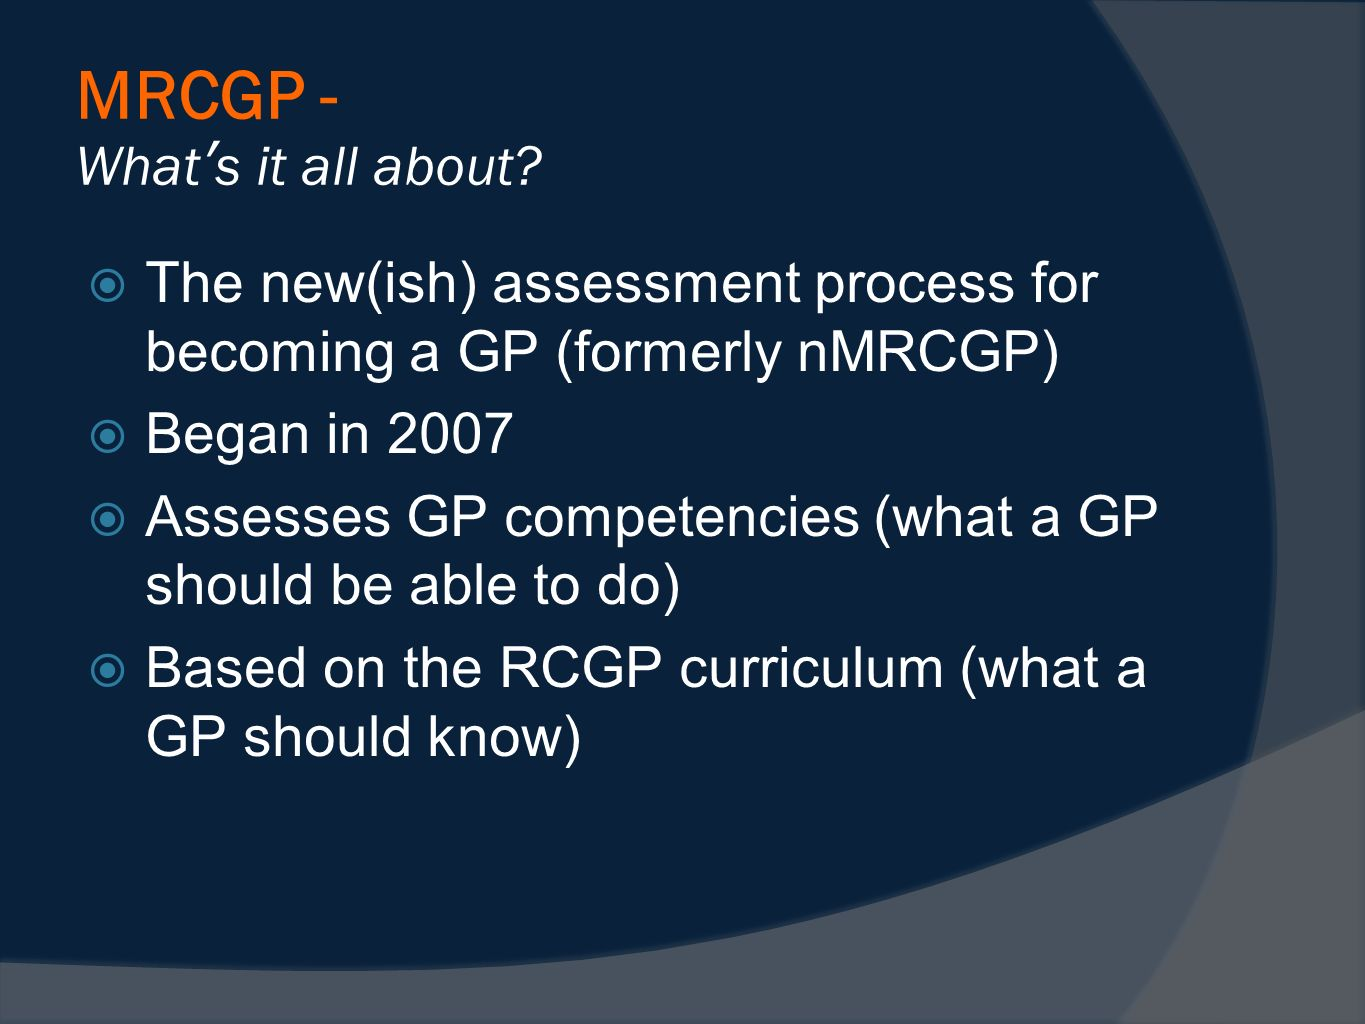 MRCGP - Whats it all about? The new(ish) assessment process for becoming a GP (formerly nMRCGP) Began in 2007 Assesses GP competencies (what a GP shou